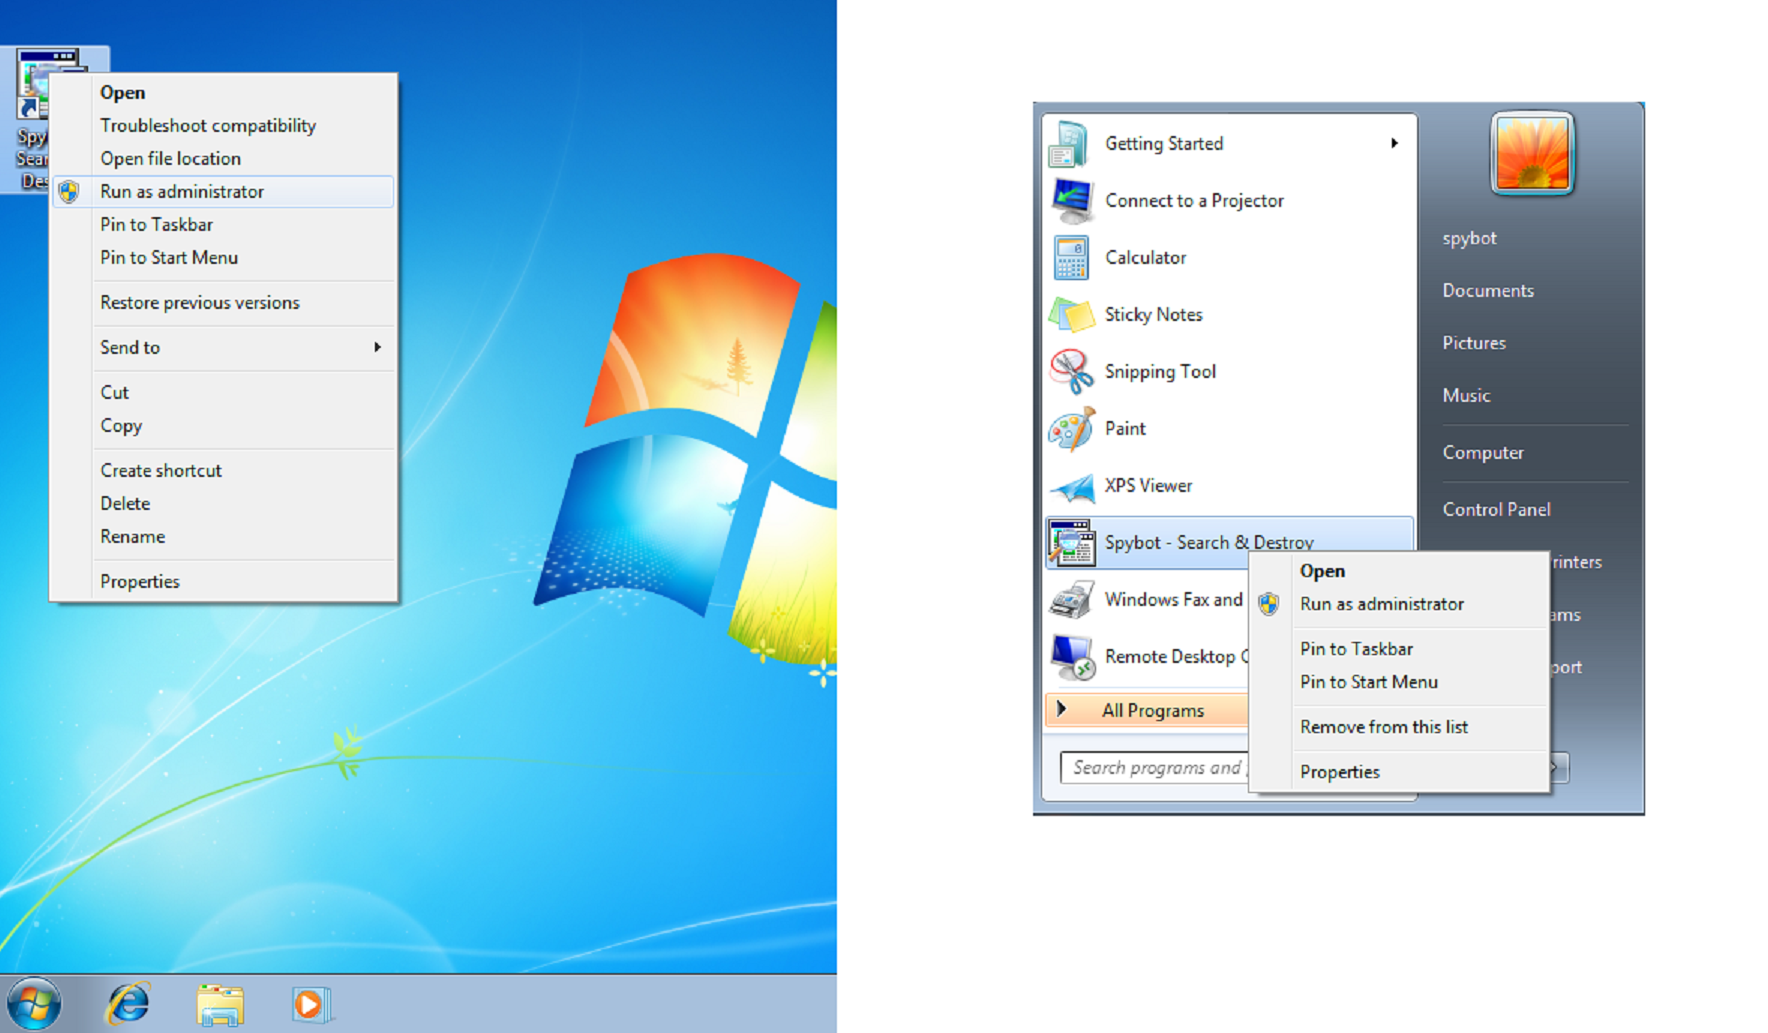 how to get administrator access on windows 8